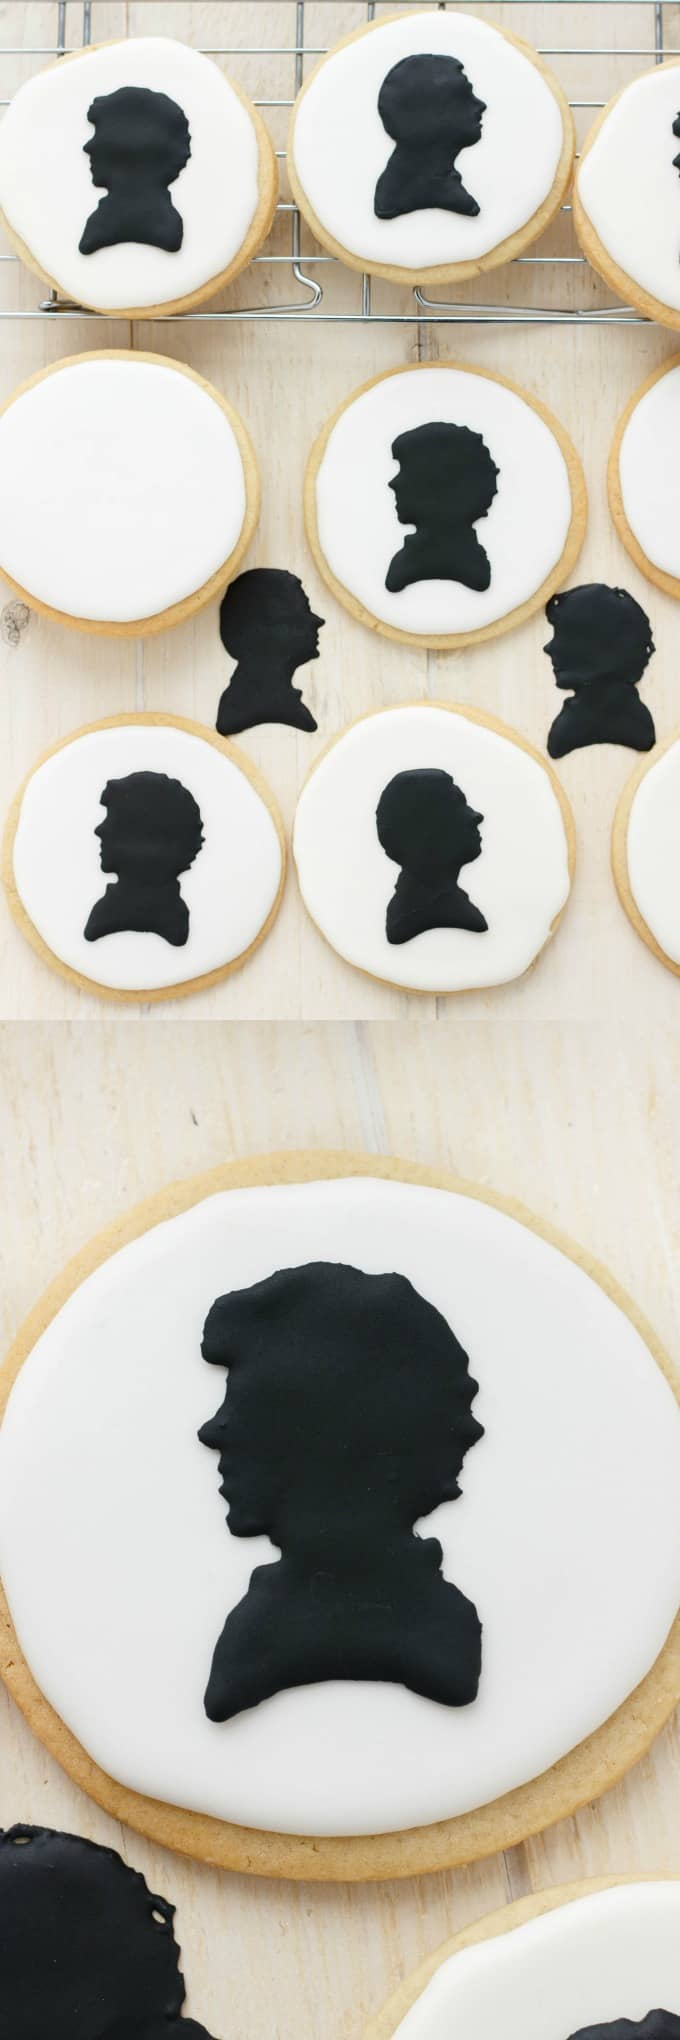 Royal Icing Sherlock Cookies (Cookie Geek #1) #royalicing